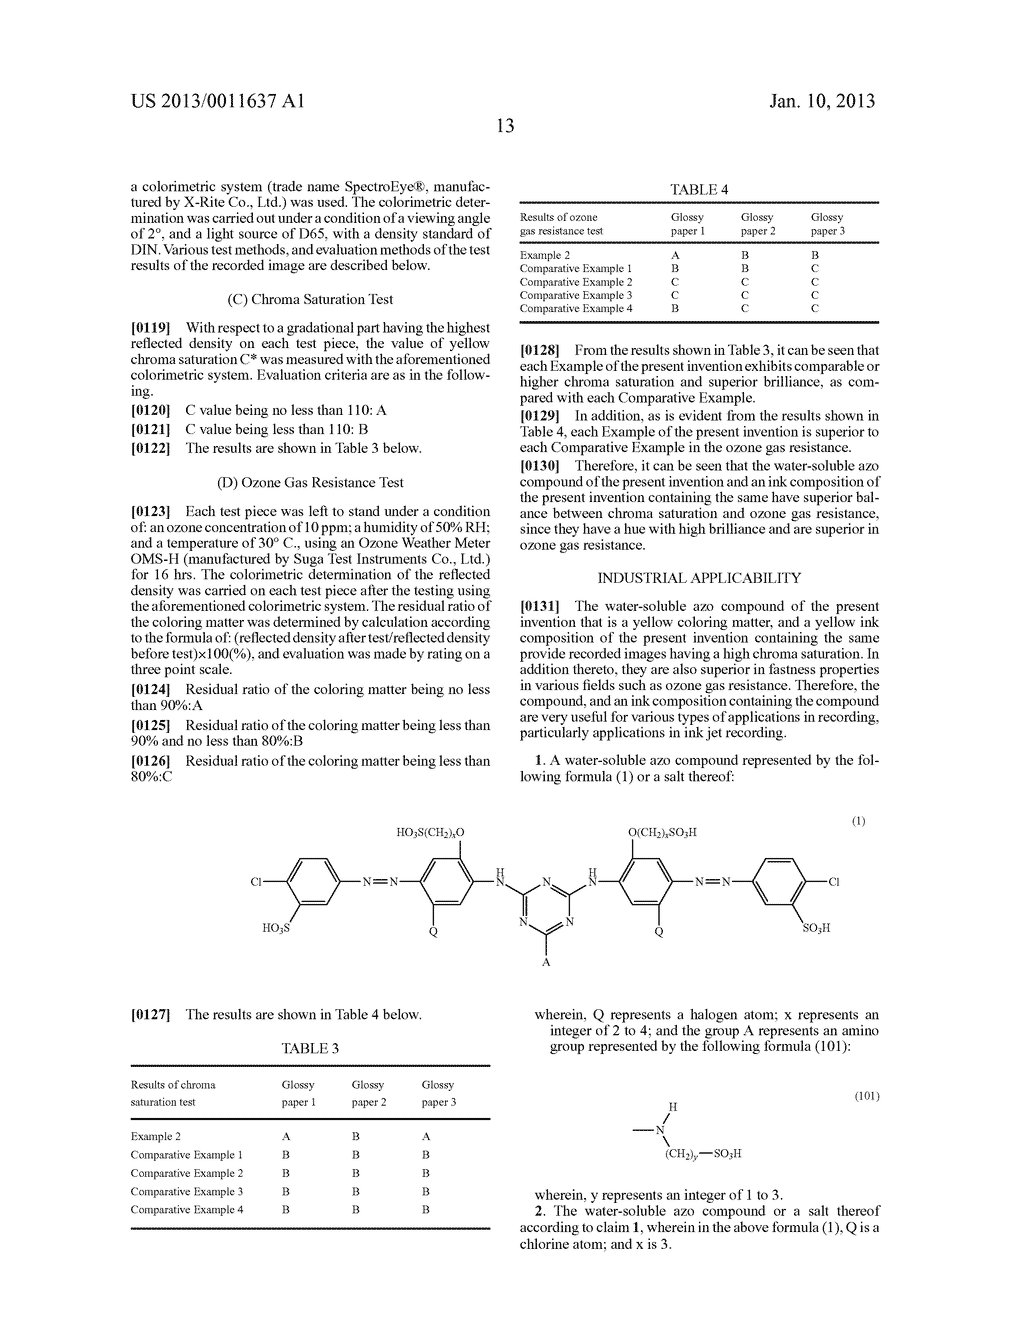 WATER-SOLUBLE AZO COMPOUND OR SALT THEREOF, INK COMPOSITION, AND COLORED     BODY - diagram, schematic, and image 14